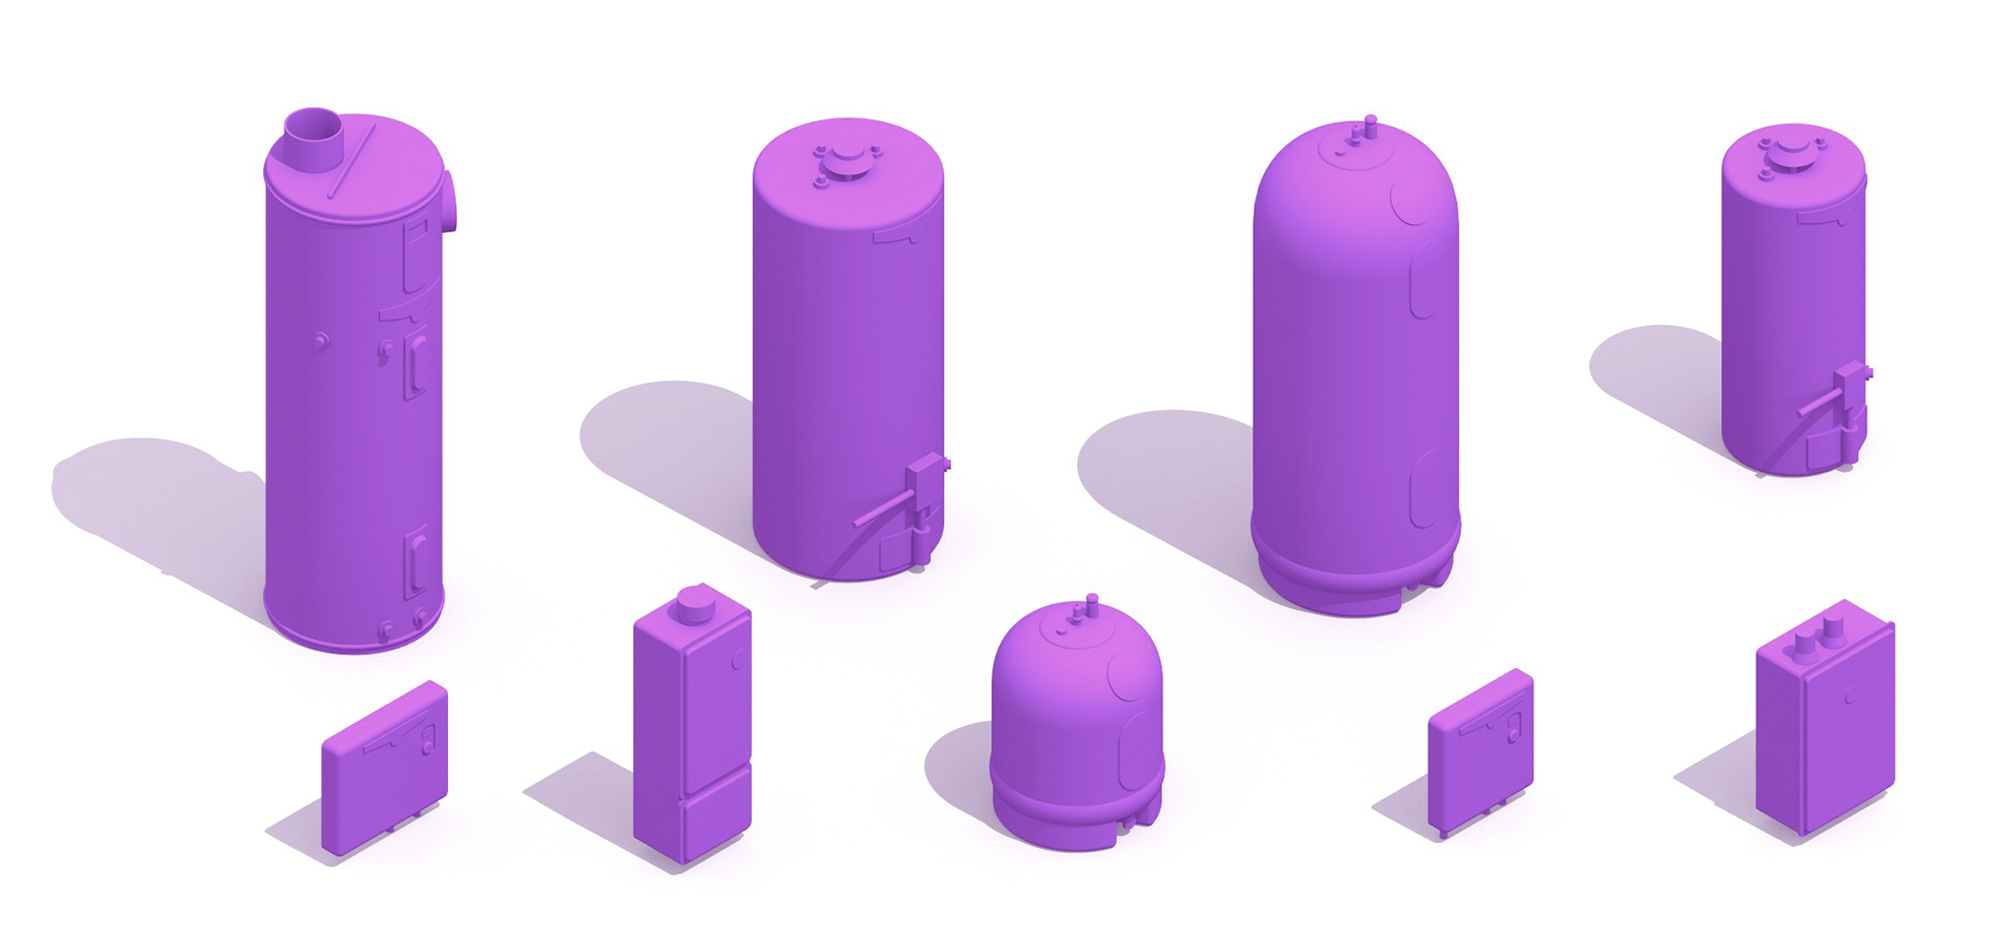 Collection of assorted Hot Water Heaters showing a range of styles, designs, sizes, capacities and types in 3D